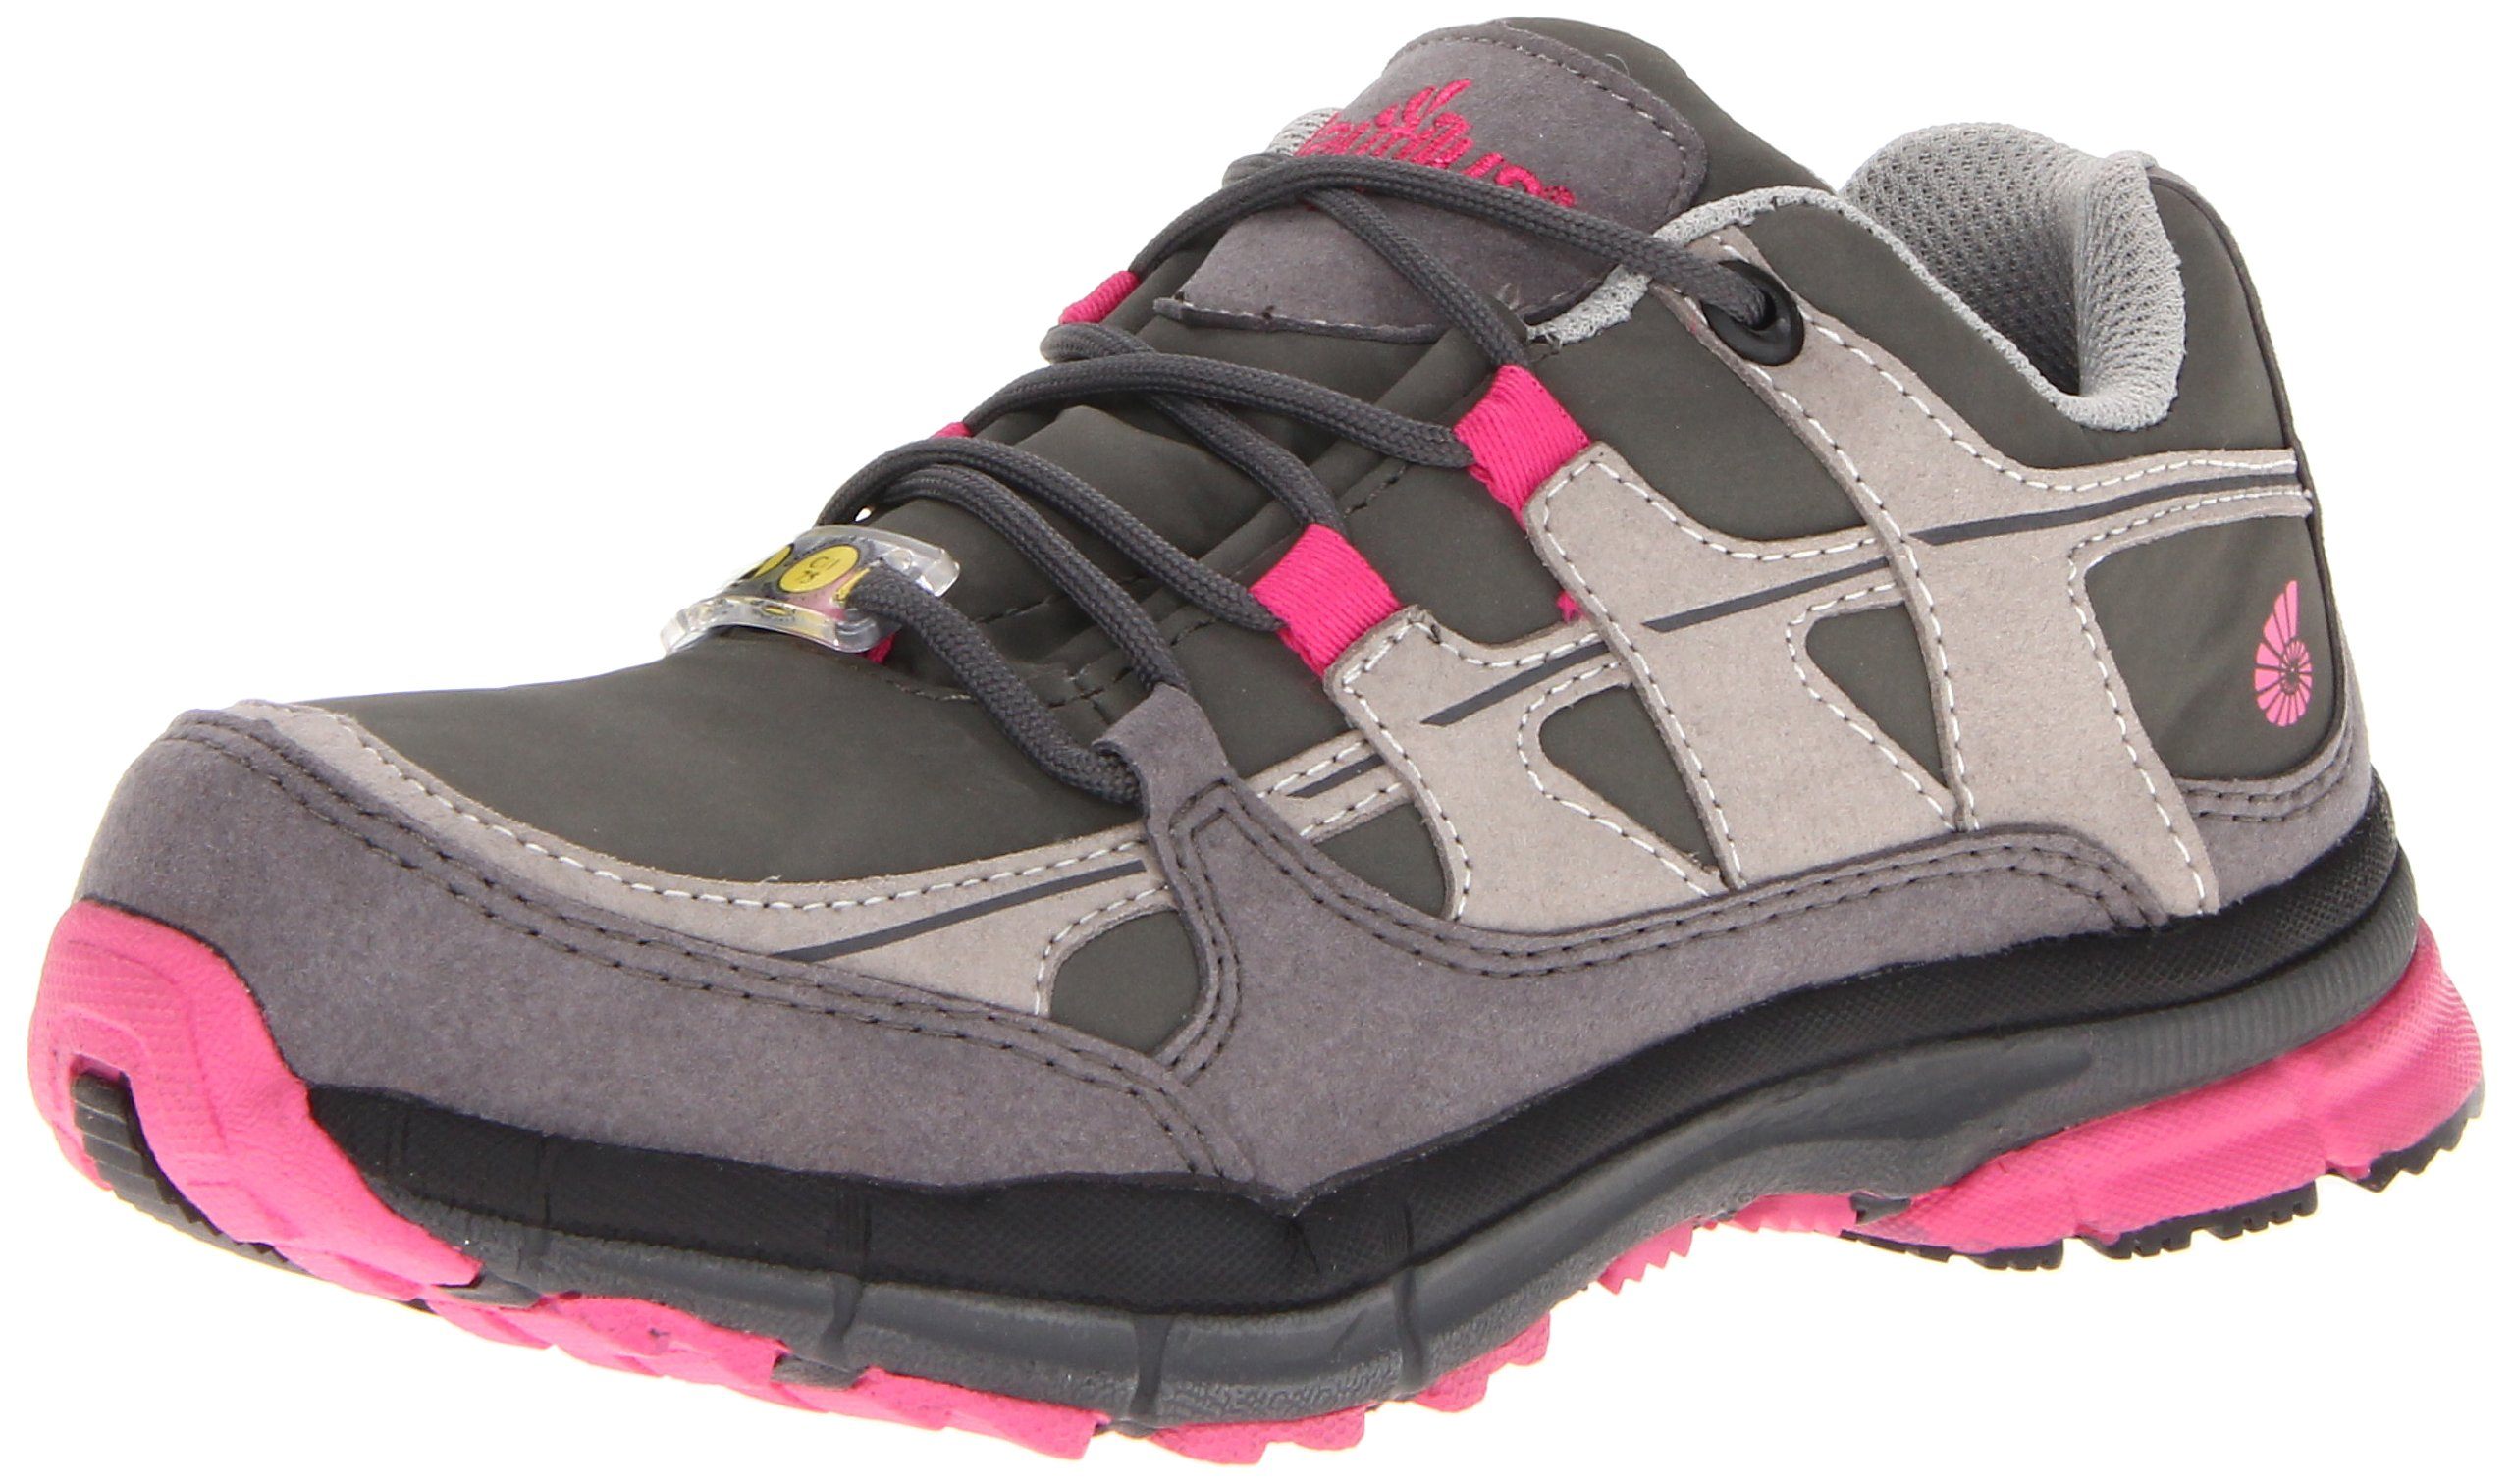 Nautilus Safety Footwear Women's 1771 Work Shoe